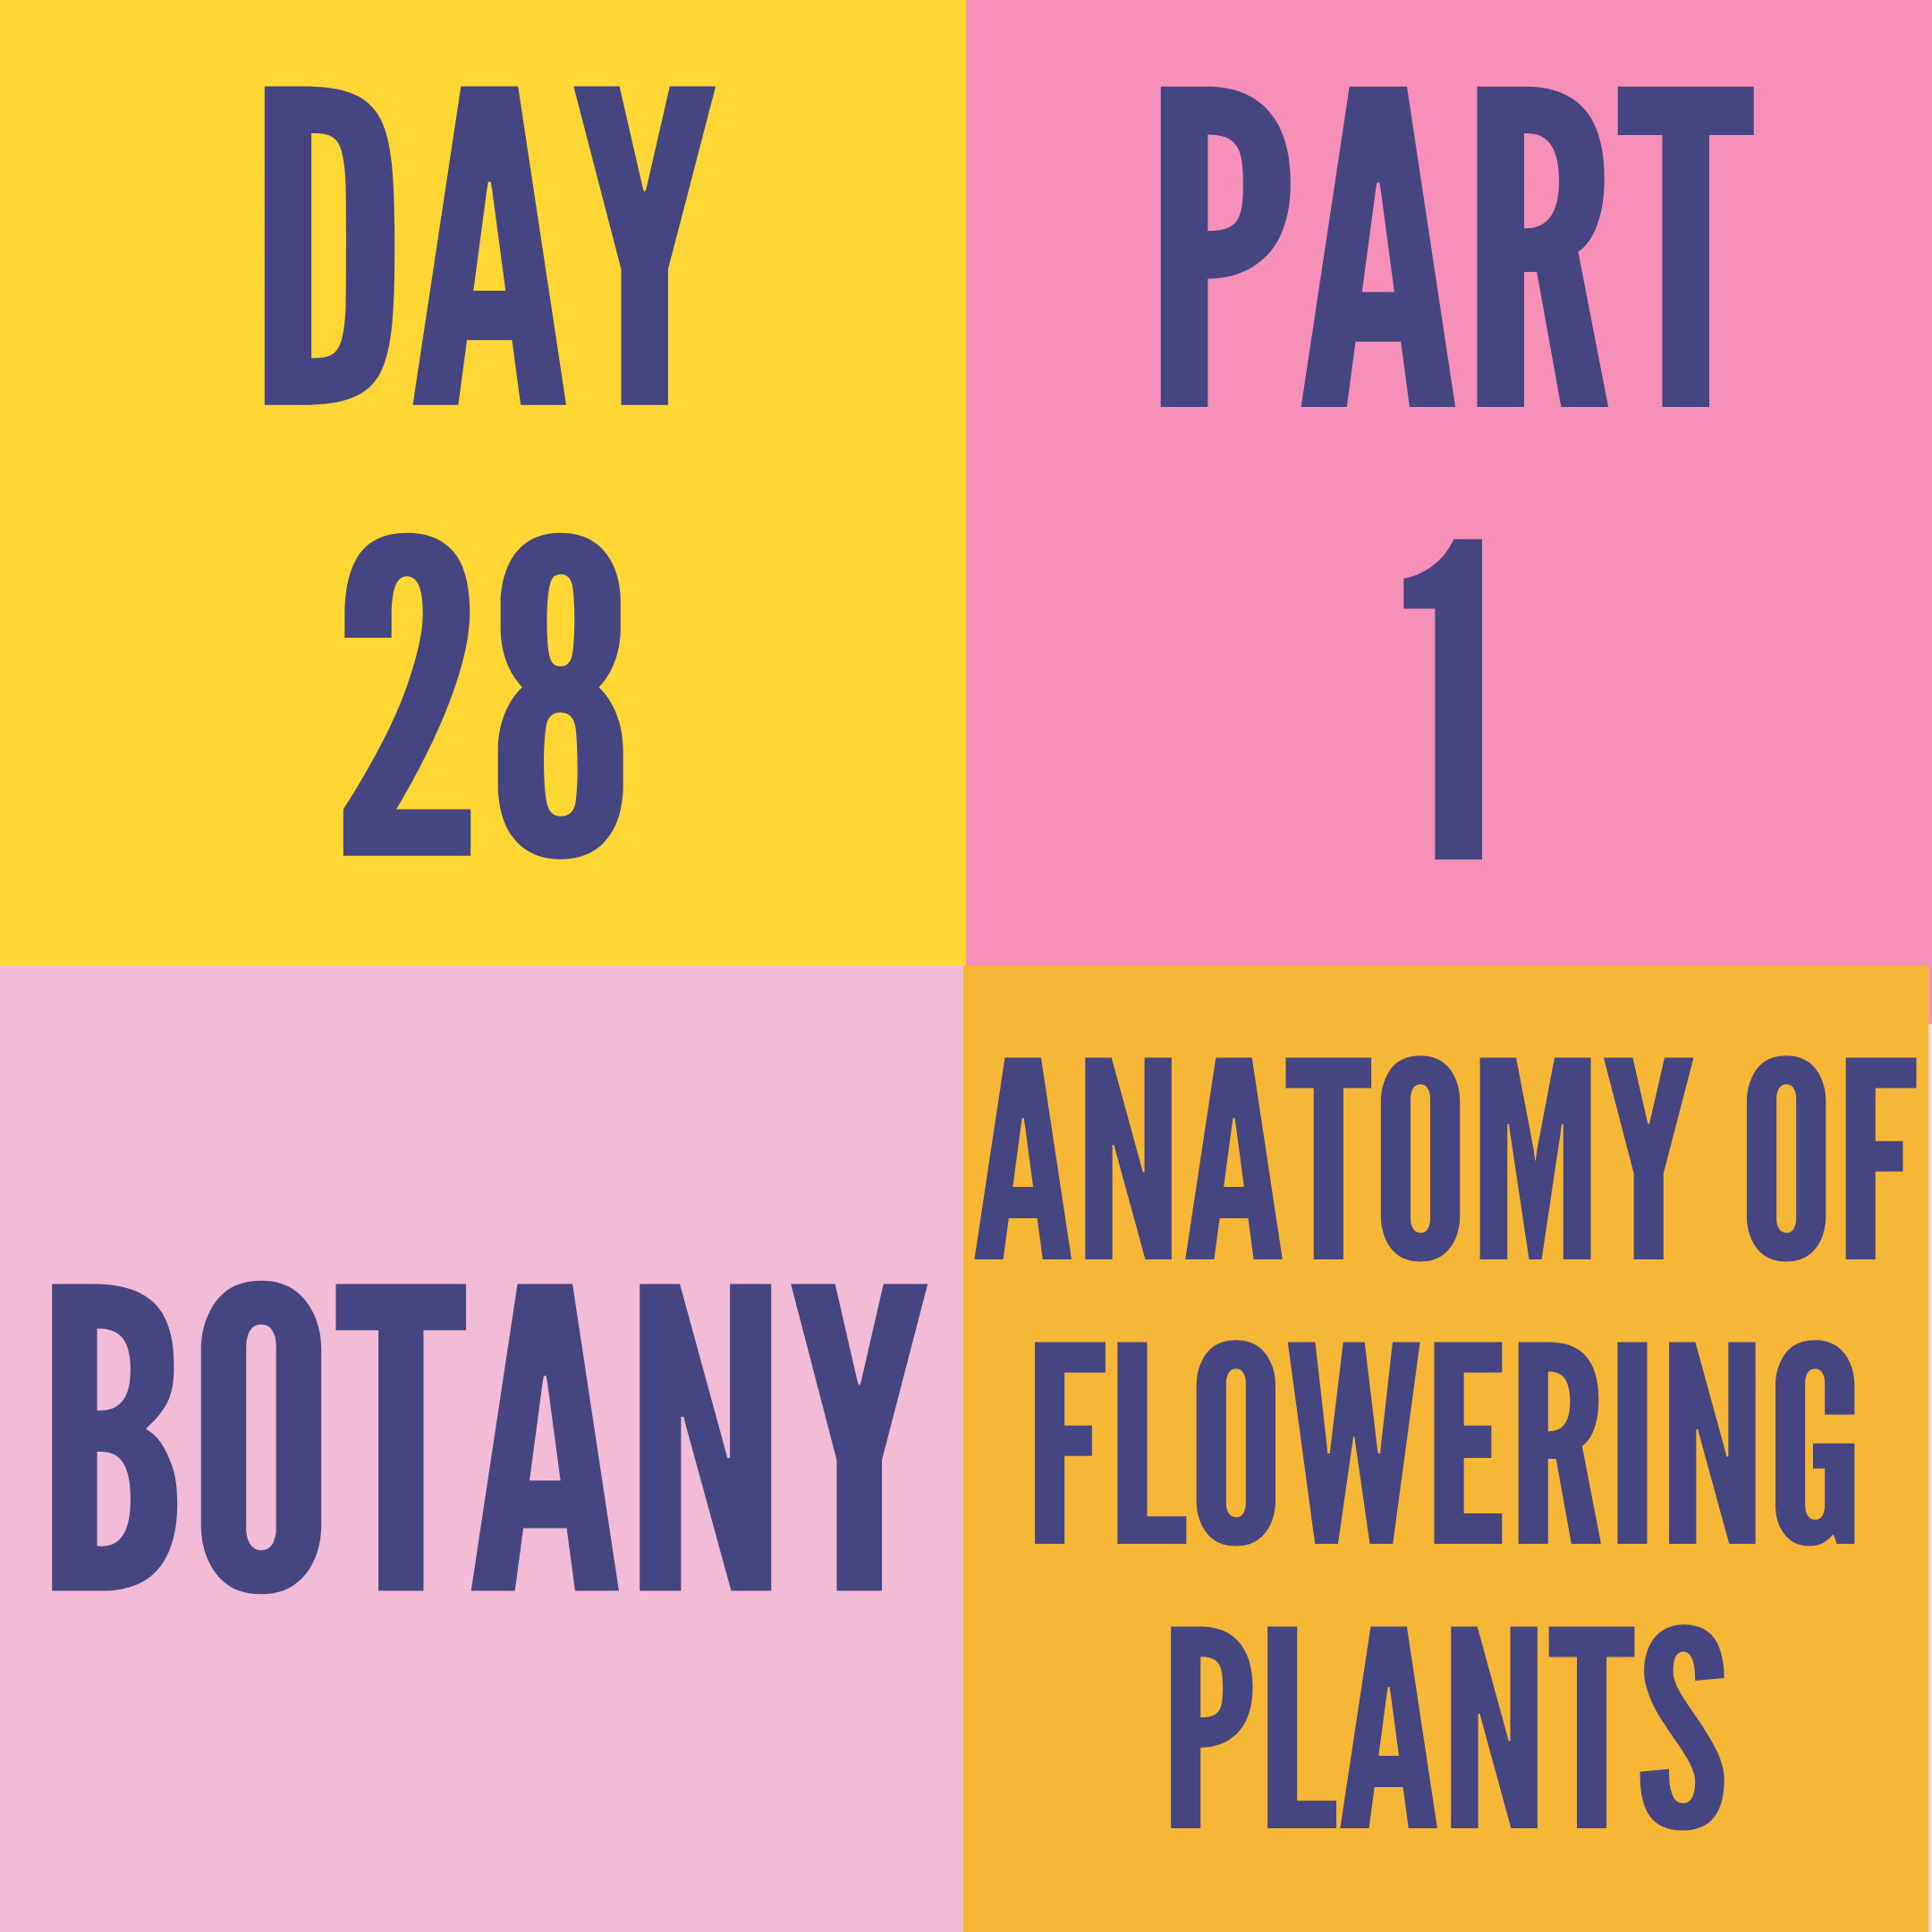 DAY-28 PART-1 ANATOMY OF FLOWERING PLANT